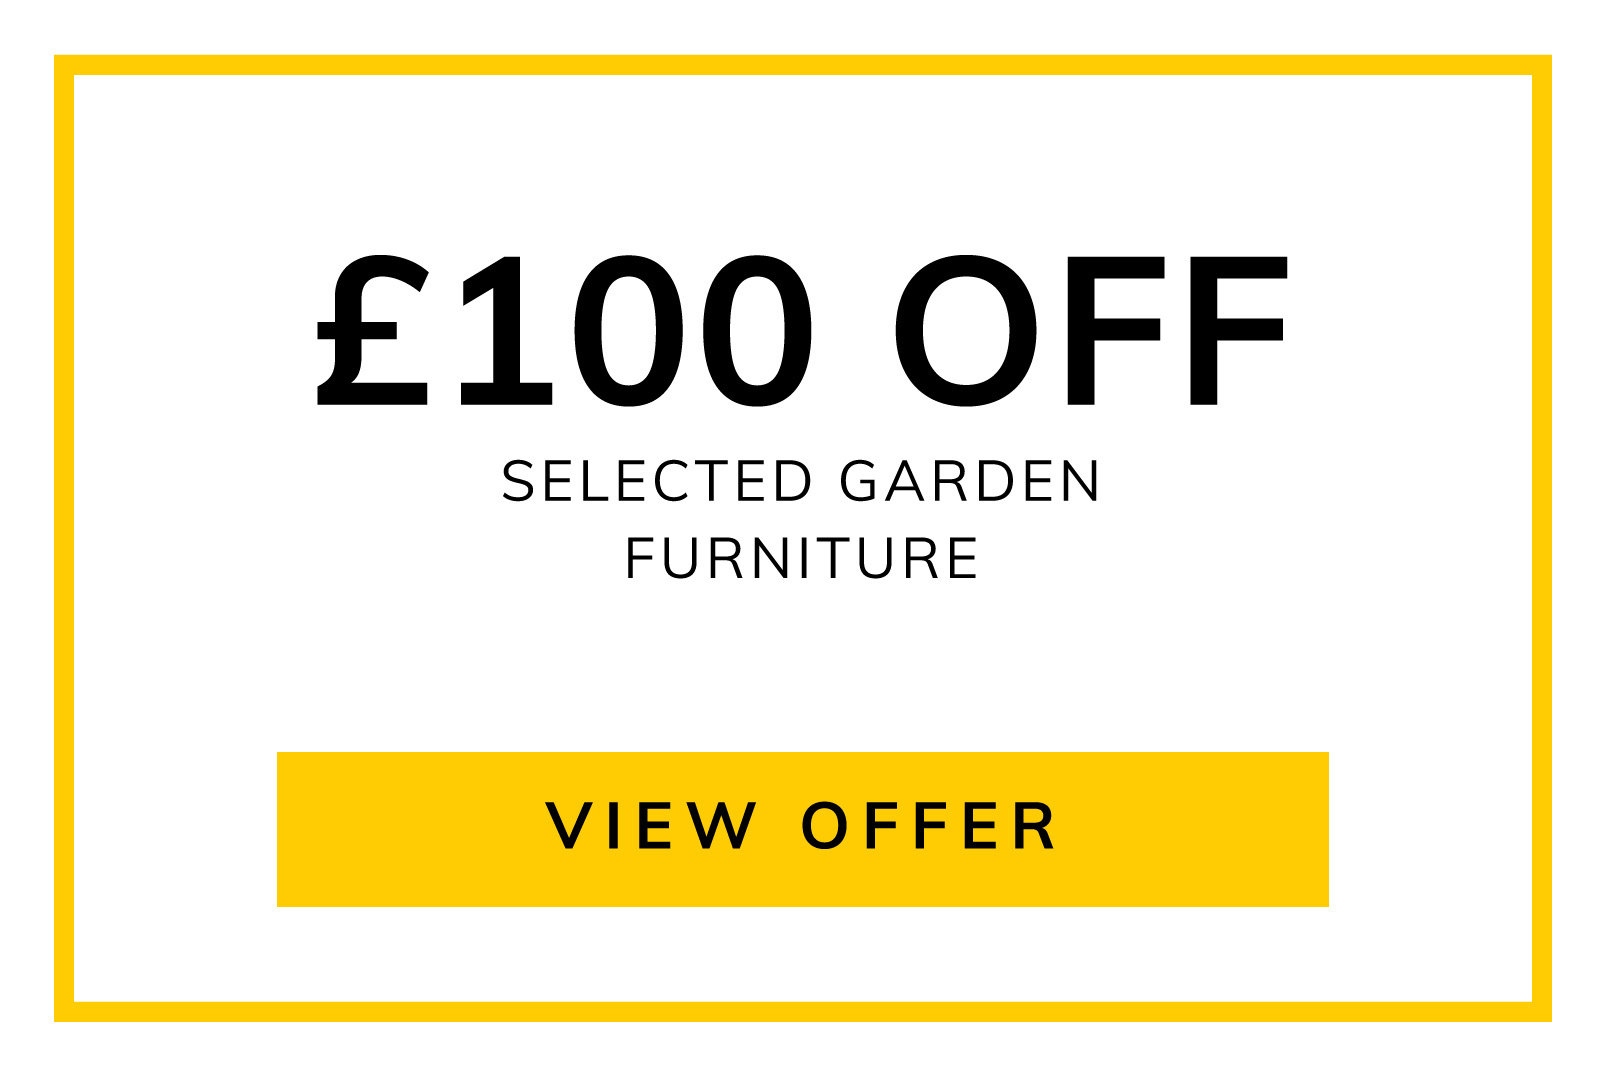 Up to £100 OFF Selected Garden Furniture